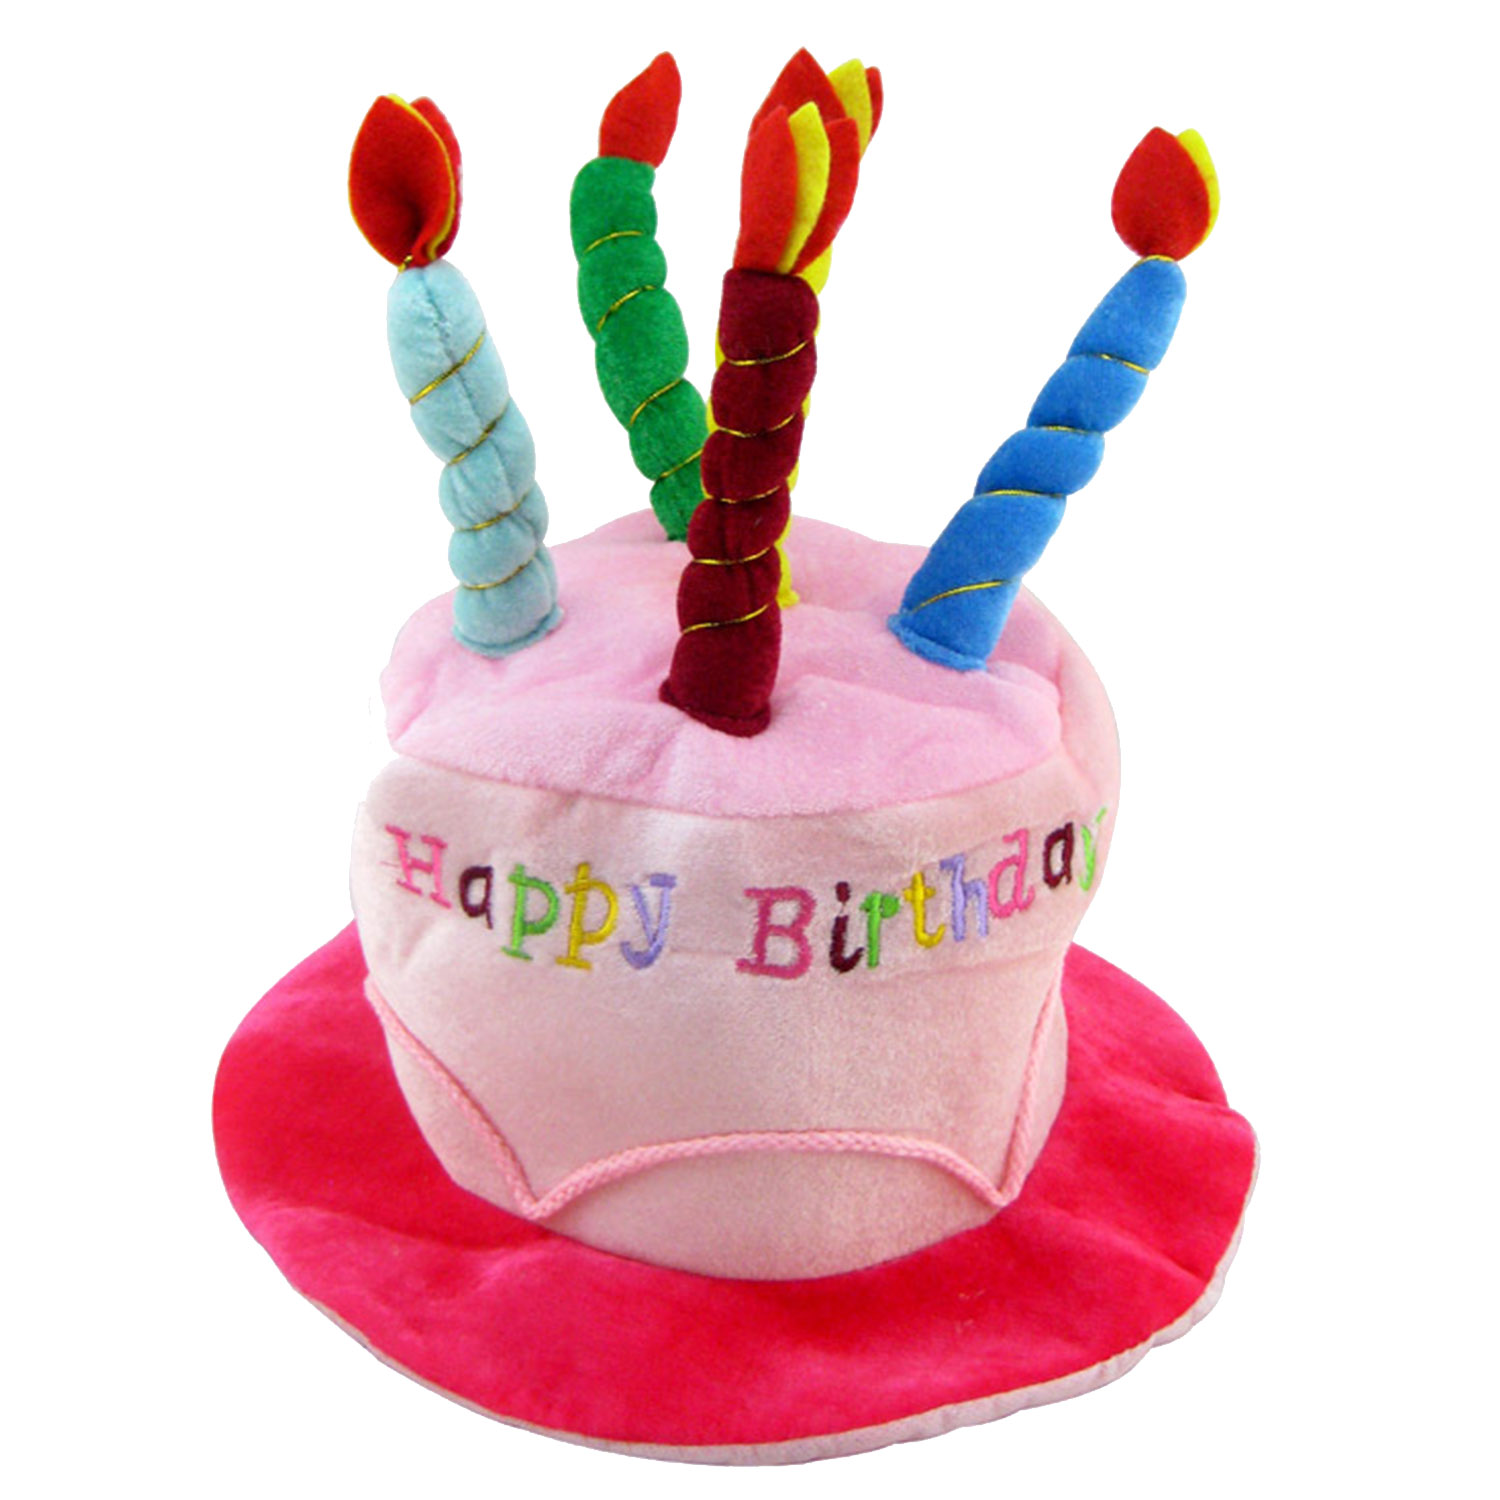 Astounding Adults Happy Birthday Hat With Cake Candles Soft Birthday Party Funny Birthday Cards Online Aboleapandamsfinfo